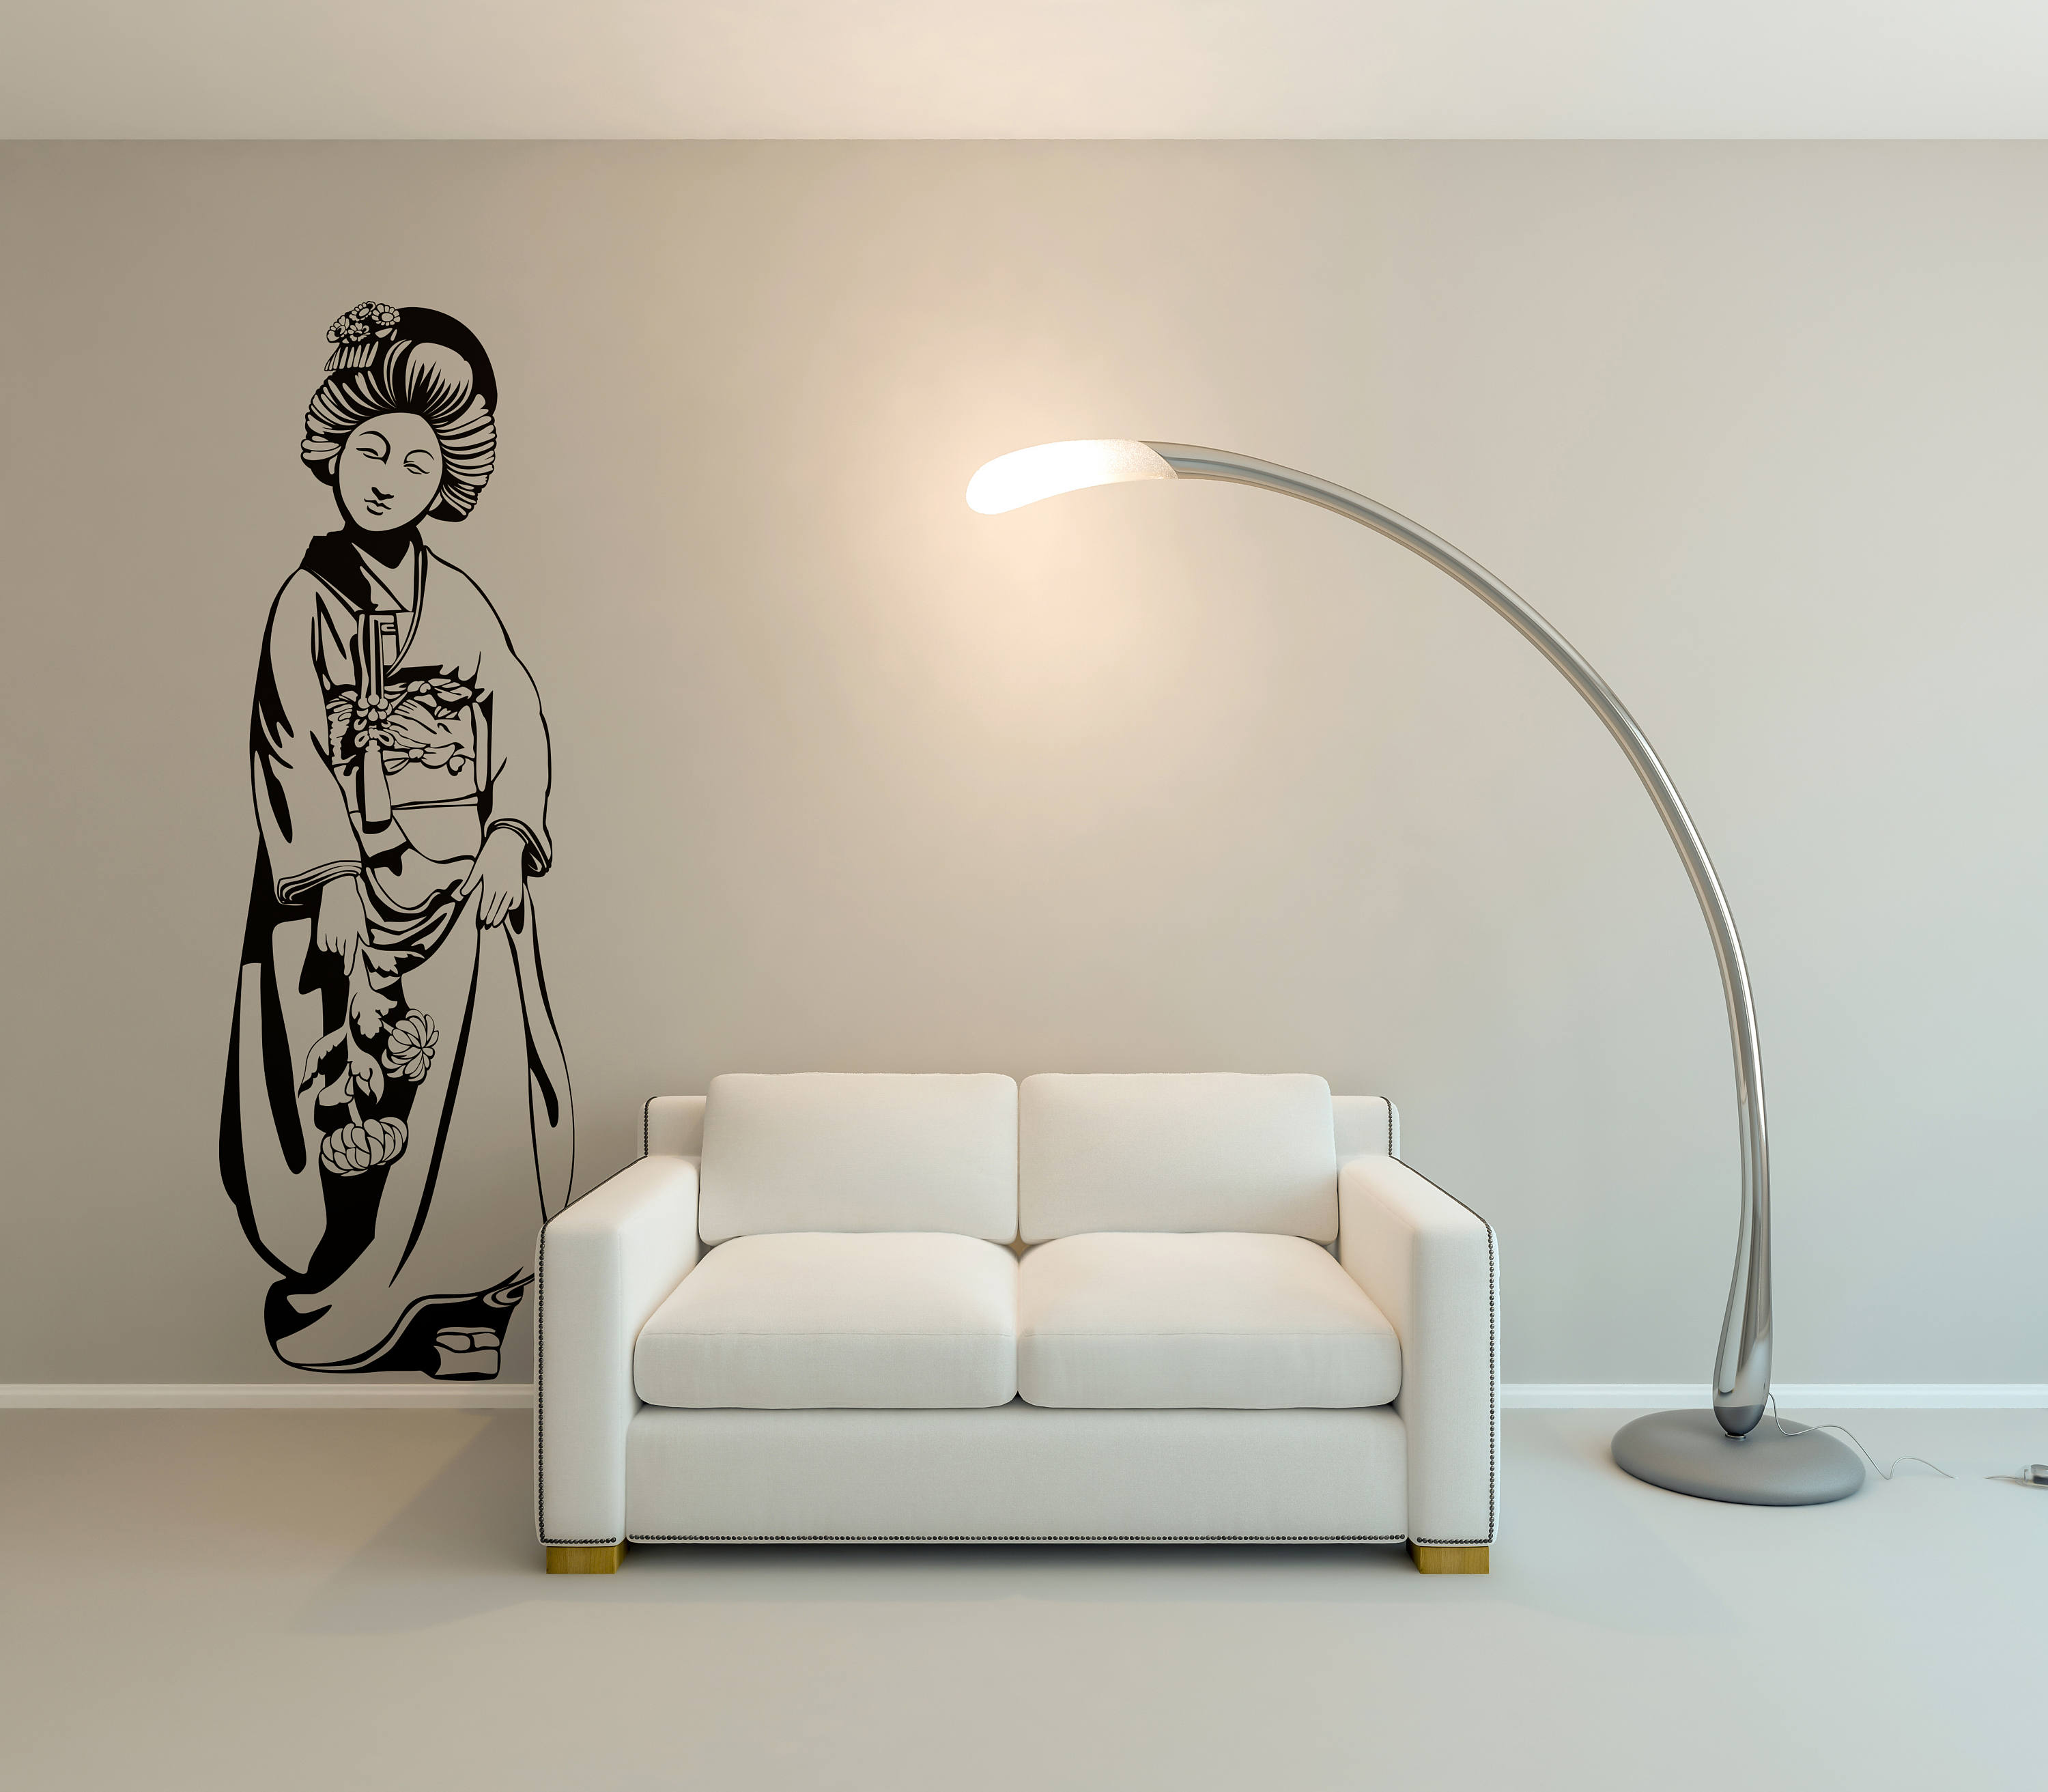 Traditional geisha woman with flowers in her hand geisha woman in feudal japan interior vinyl decal sticker for wall decor samurai